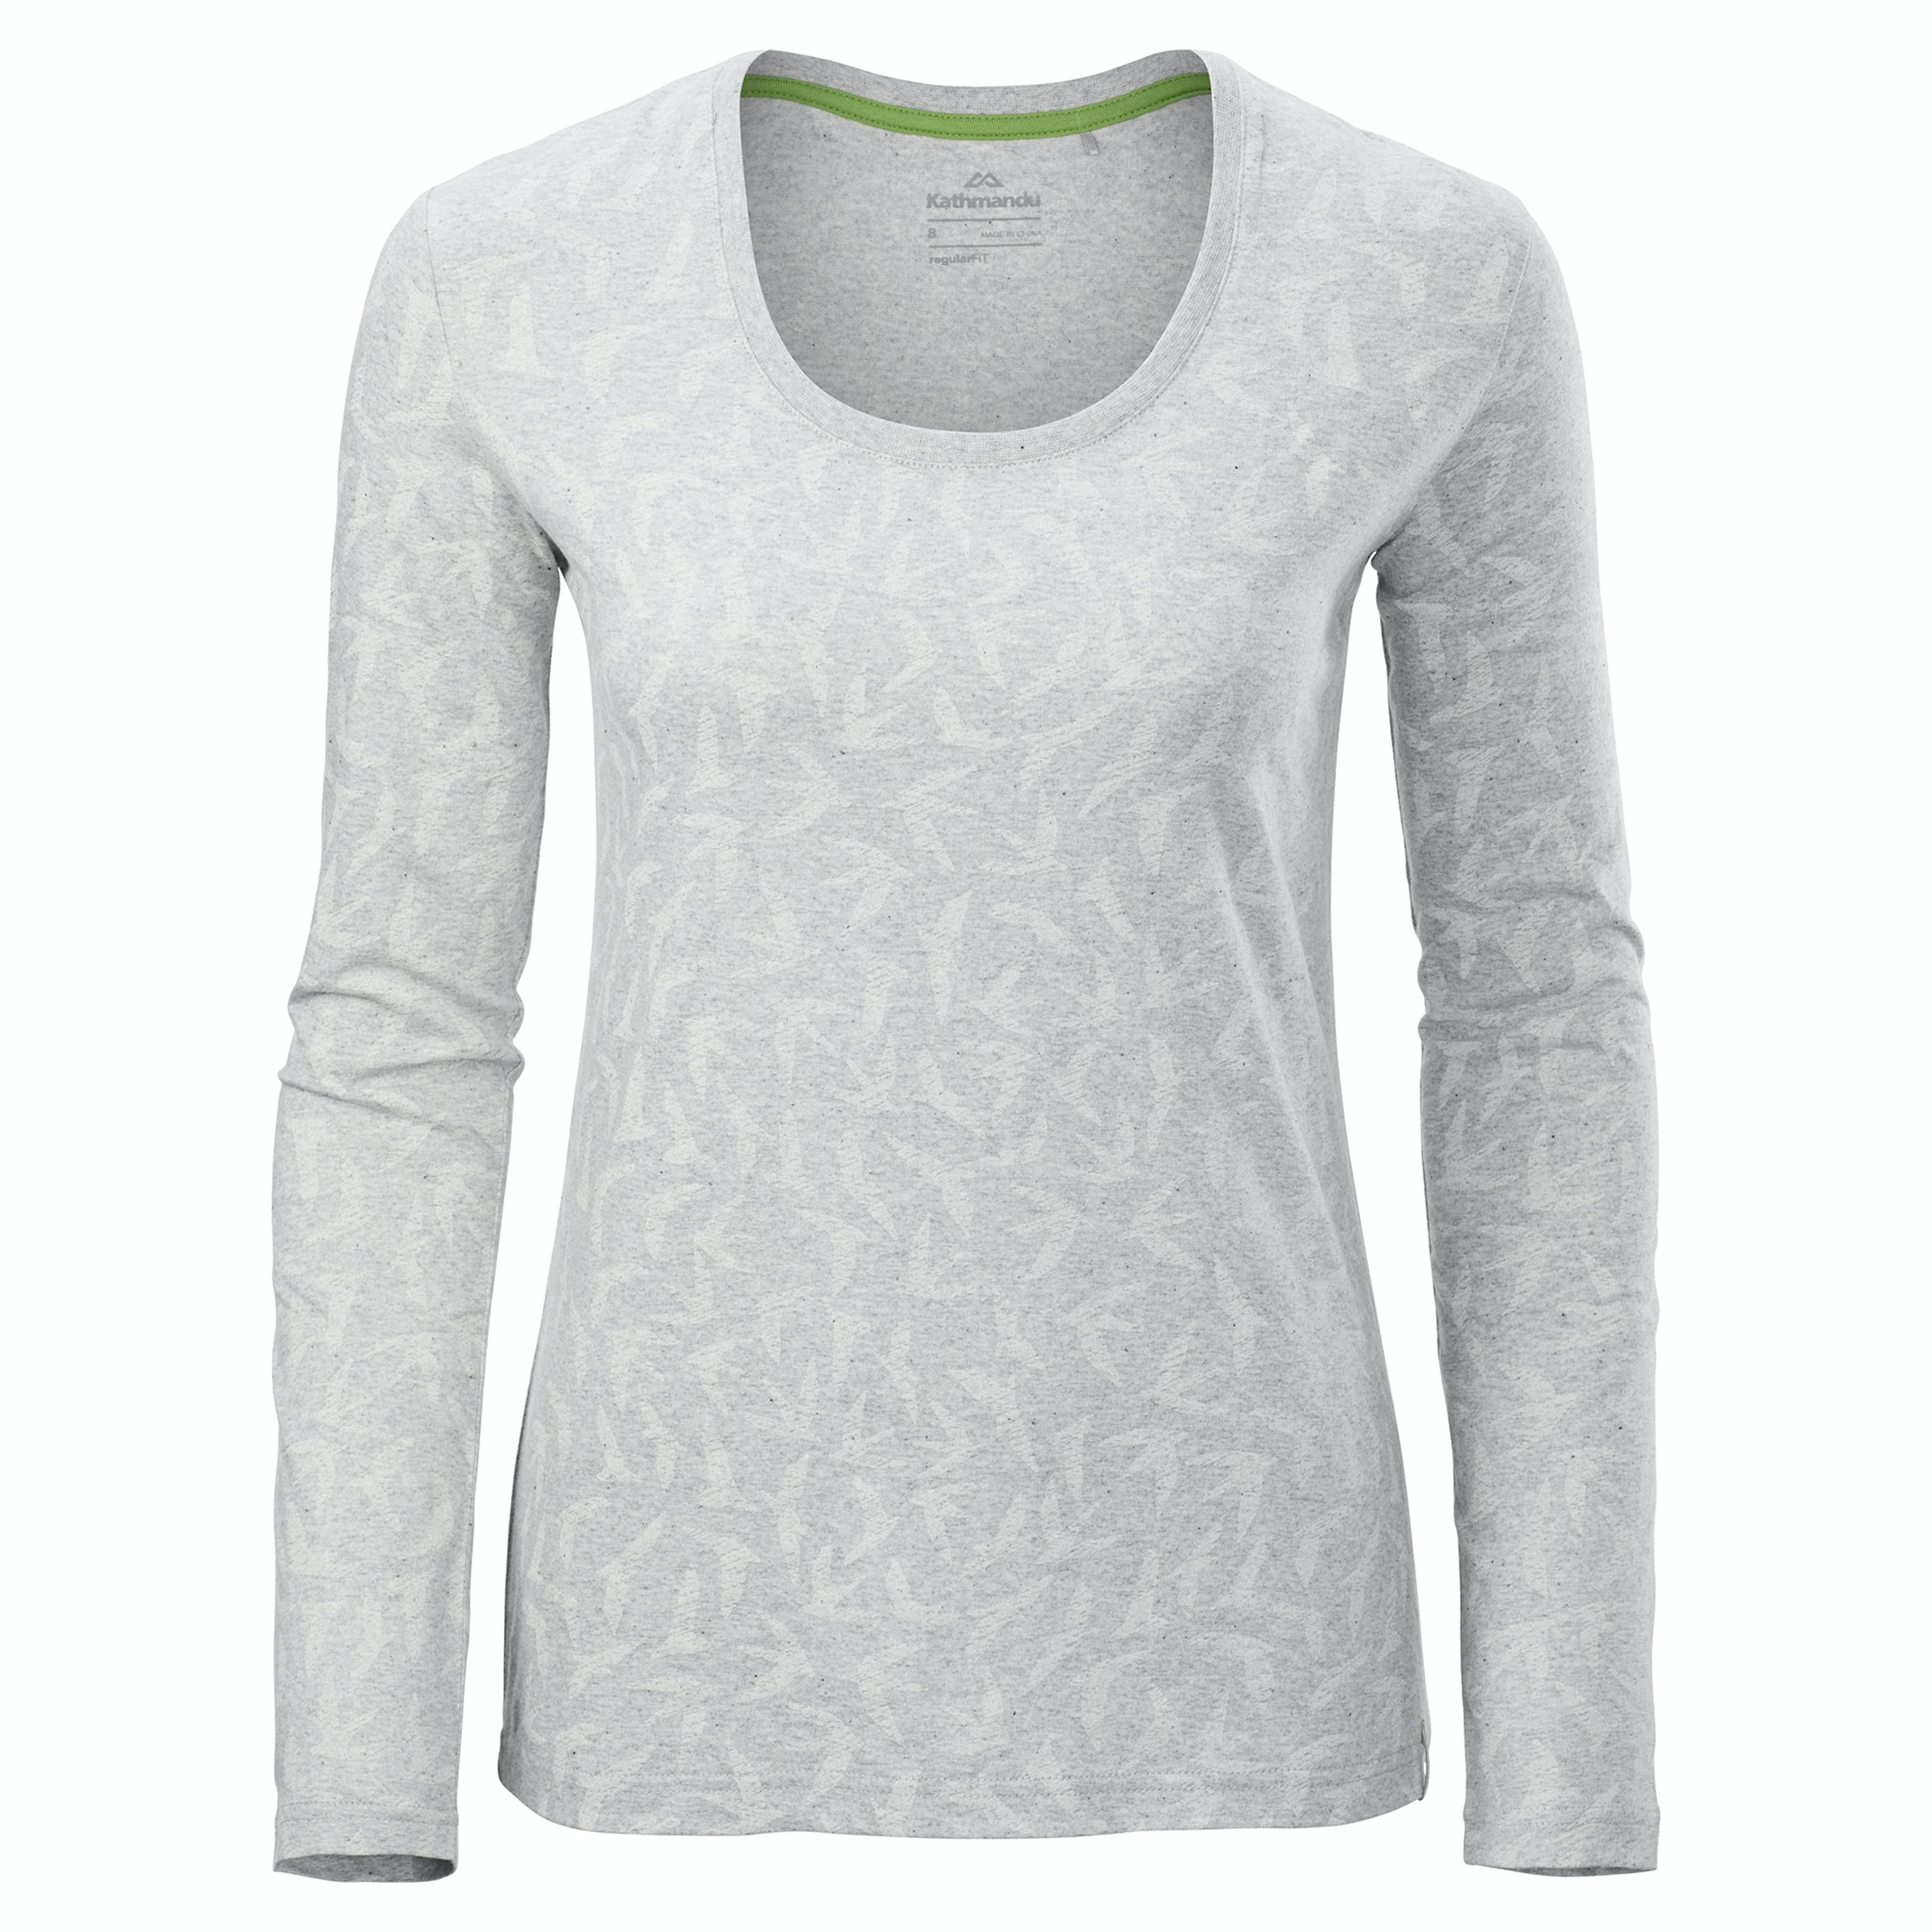 fd52afcf6974ea Tops for Women  T-shirts   Shirts Online in Australia